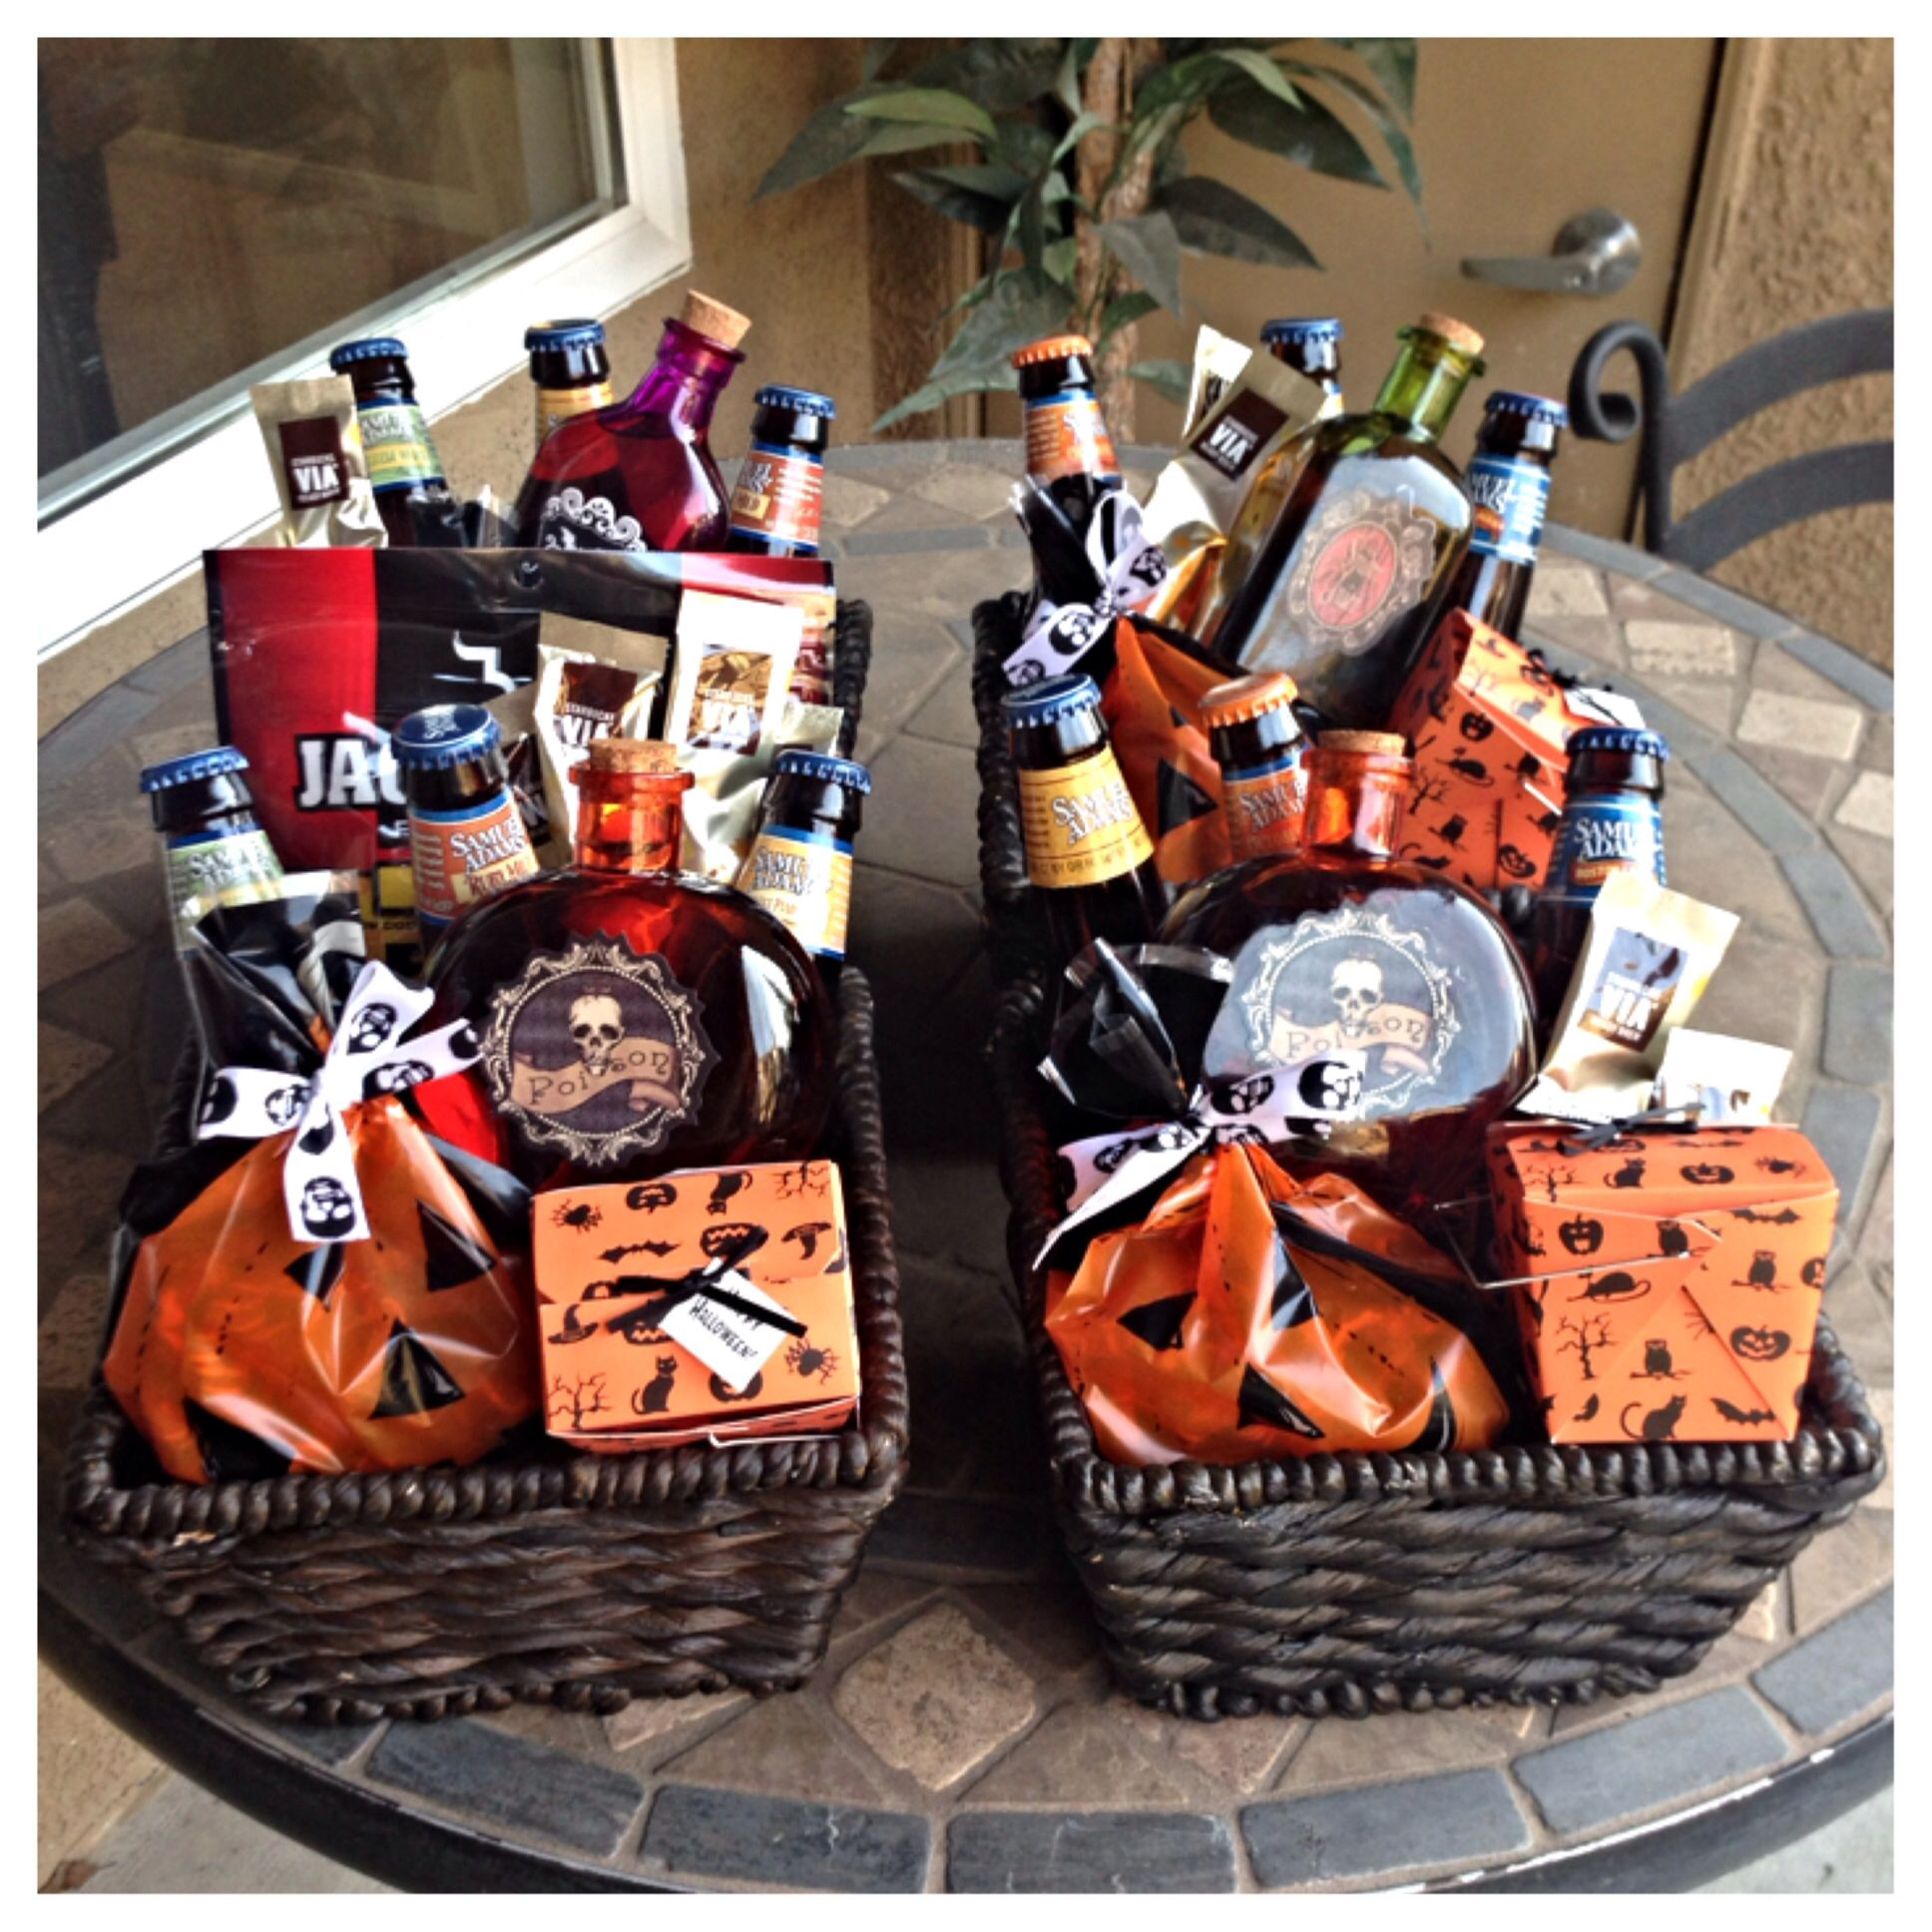 Halloween baskets I made for the guys. Samual Adams, Jim bean in ...